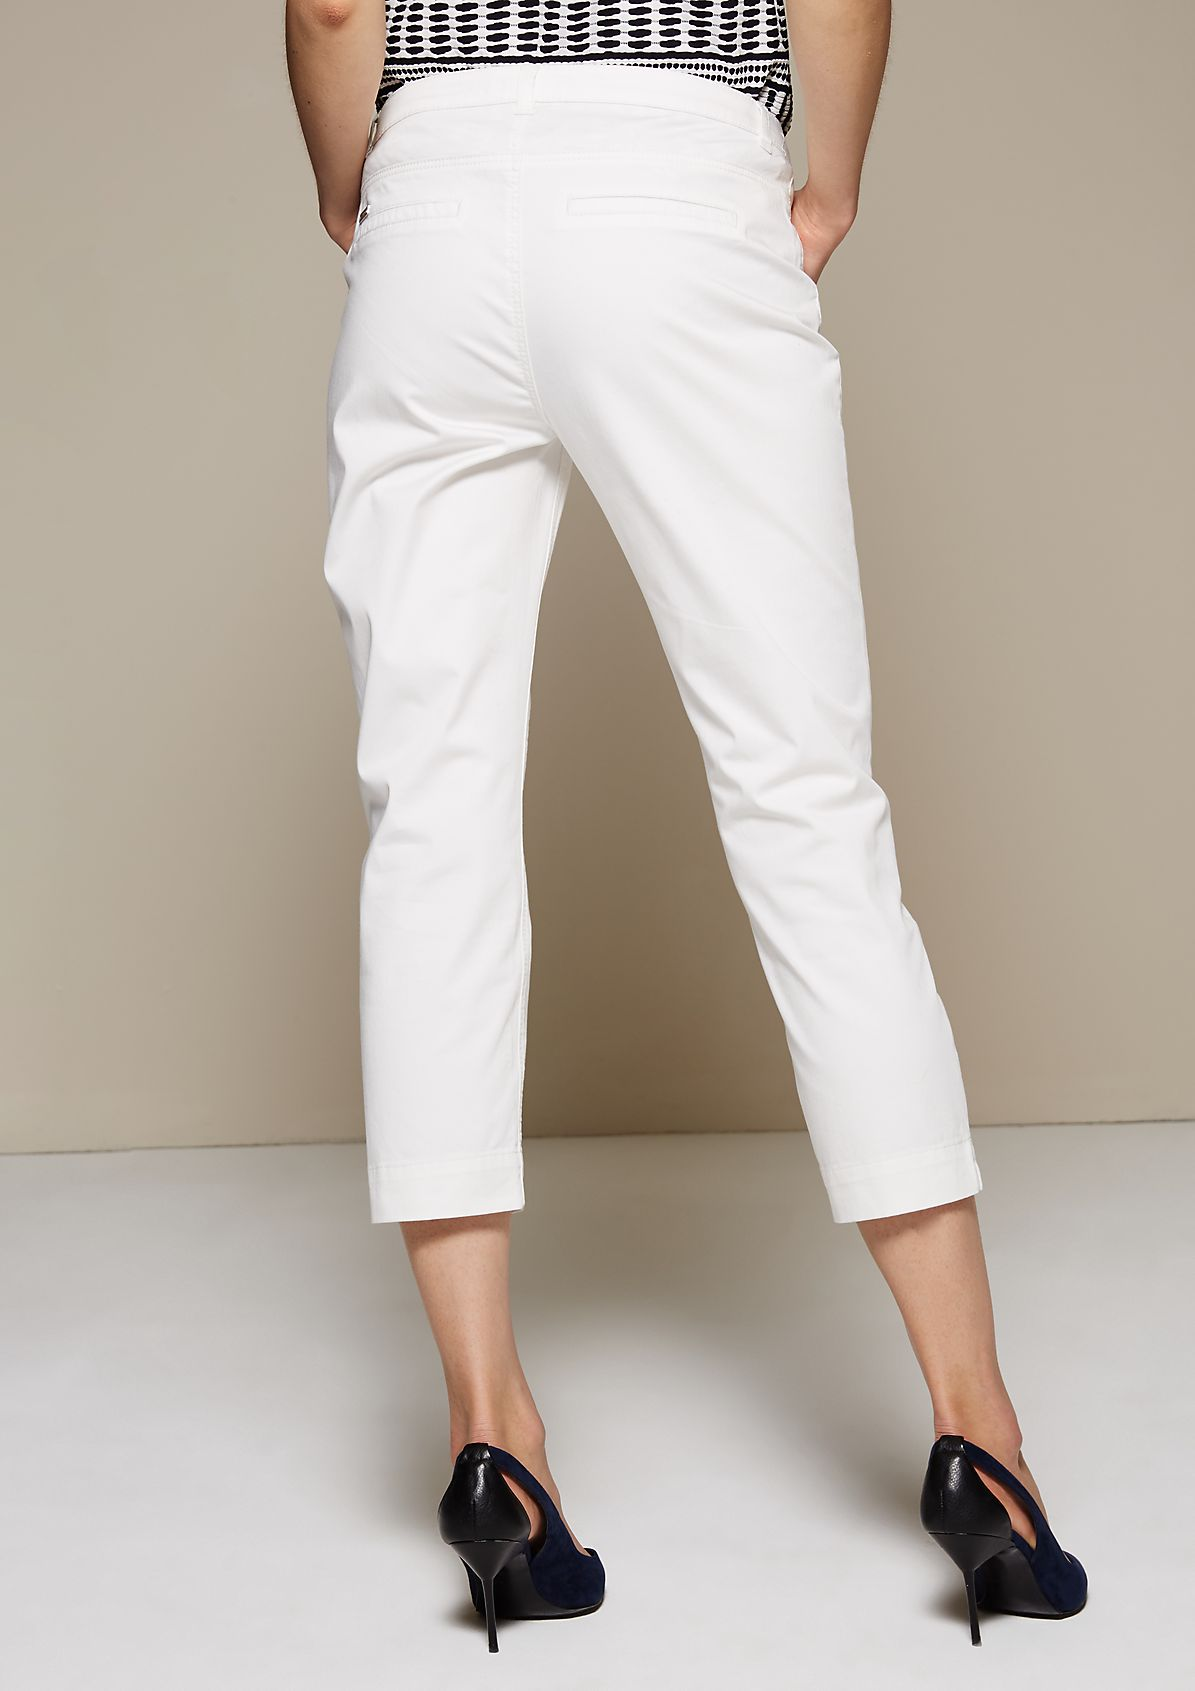 Feminine satin trousers with a 7/8-length leg from s.Oliver